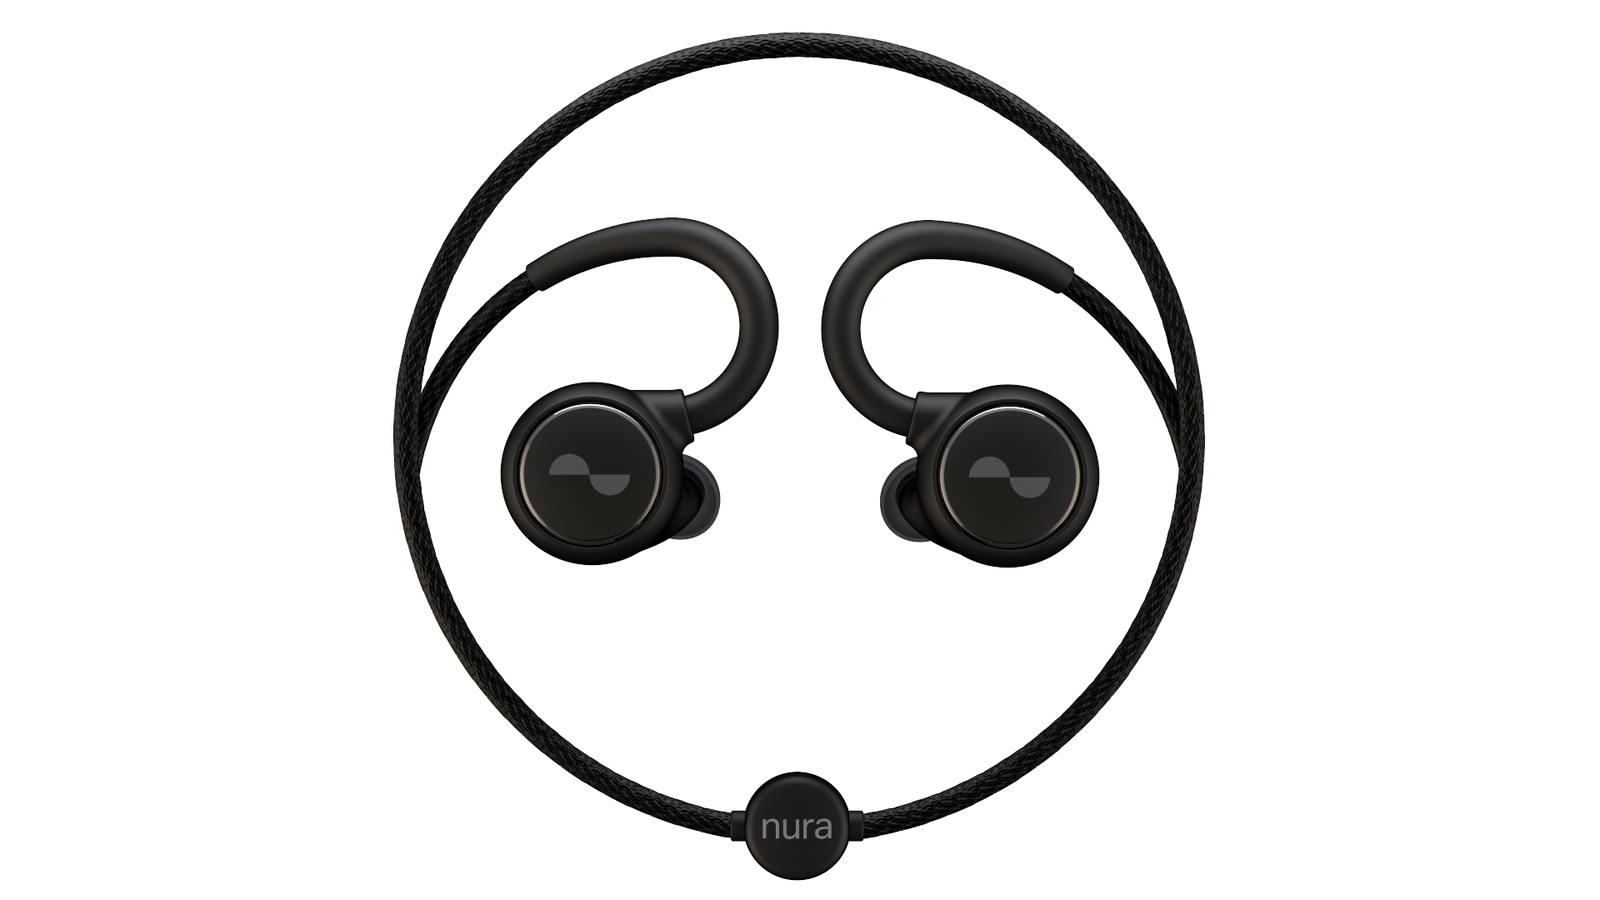 ea1658c112b Nura announces brand new adaptive earphones, the NuraLoop - Nerd Reactor